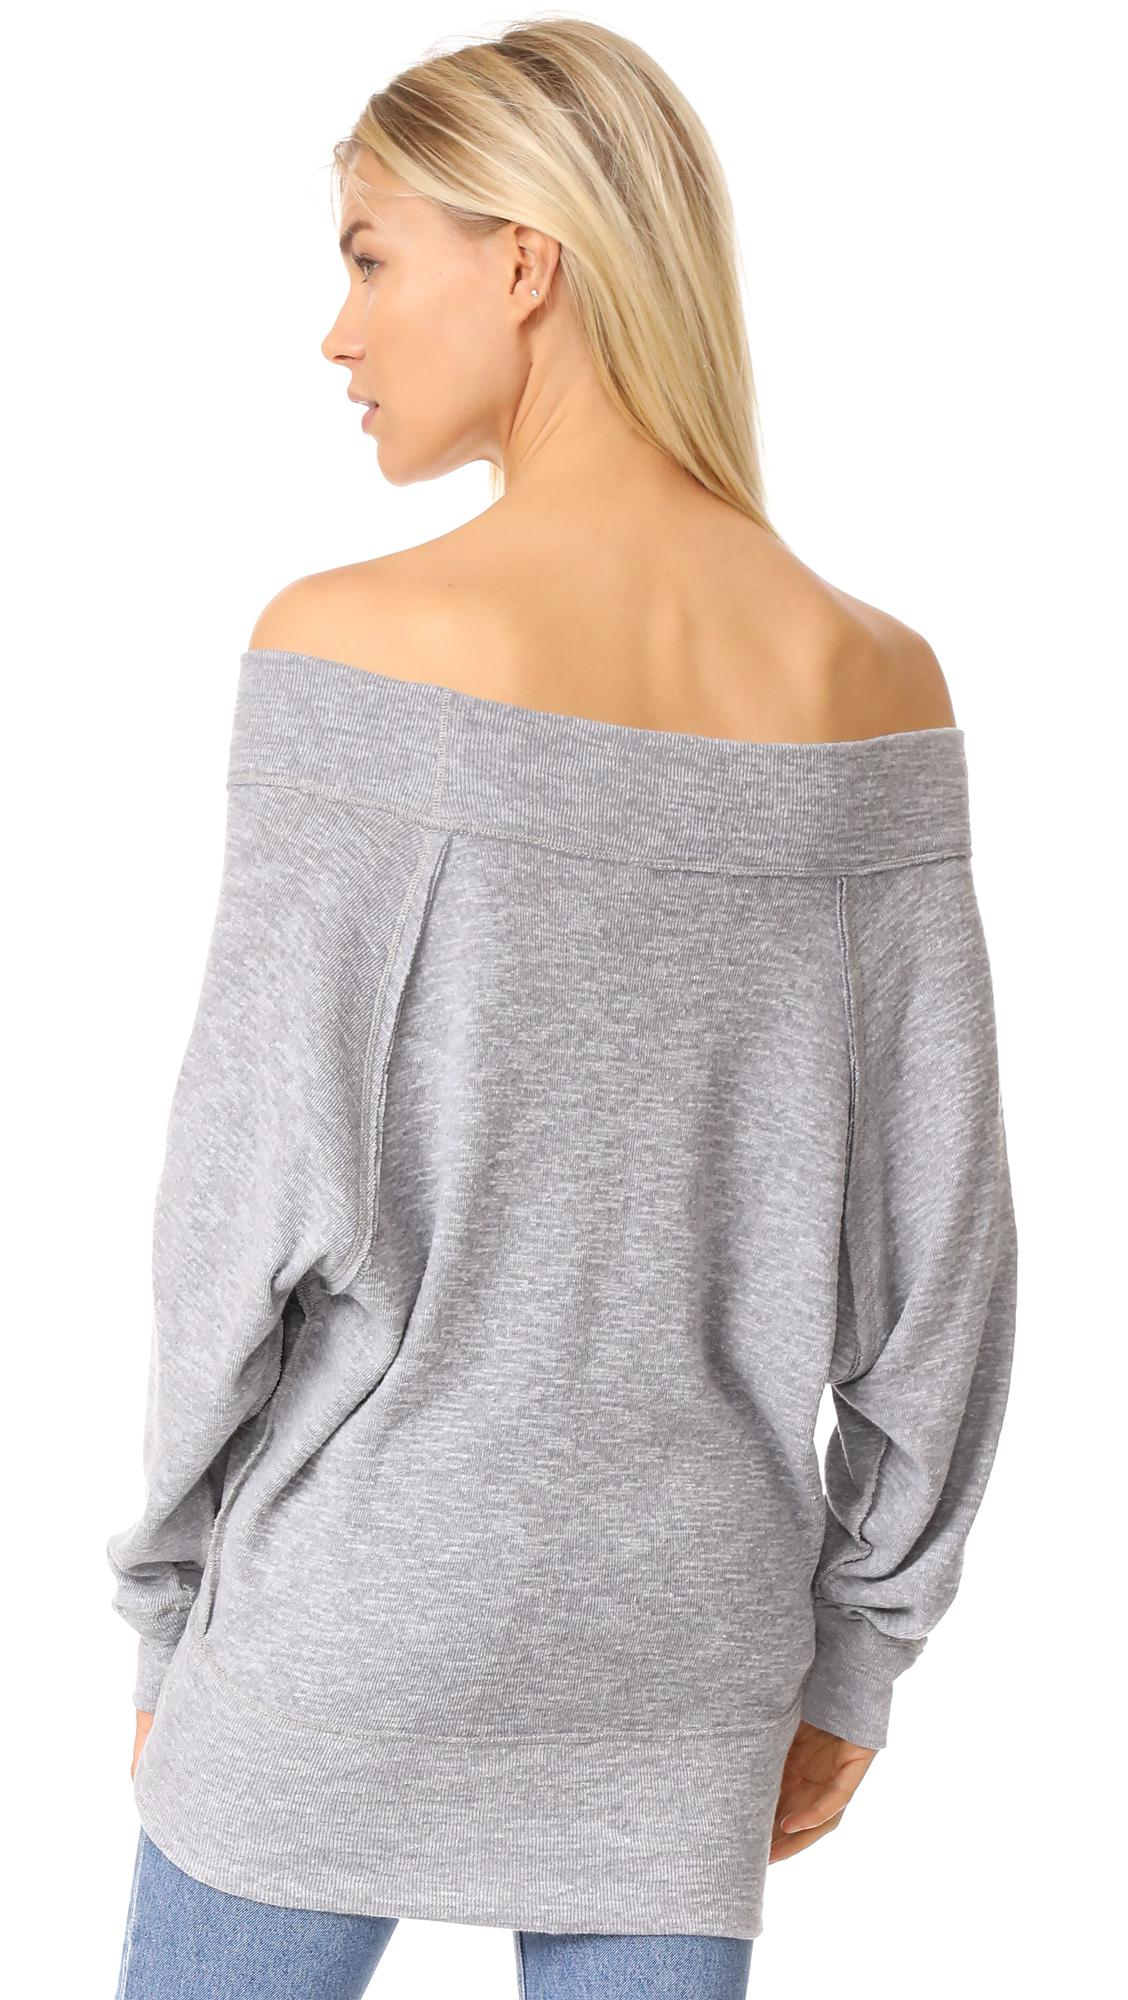 88865ceedc7 Free People Palisades Off Shoulder Top in Gray - Lyst